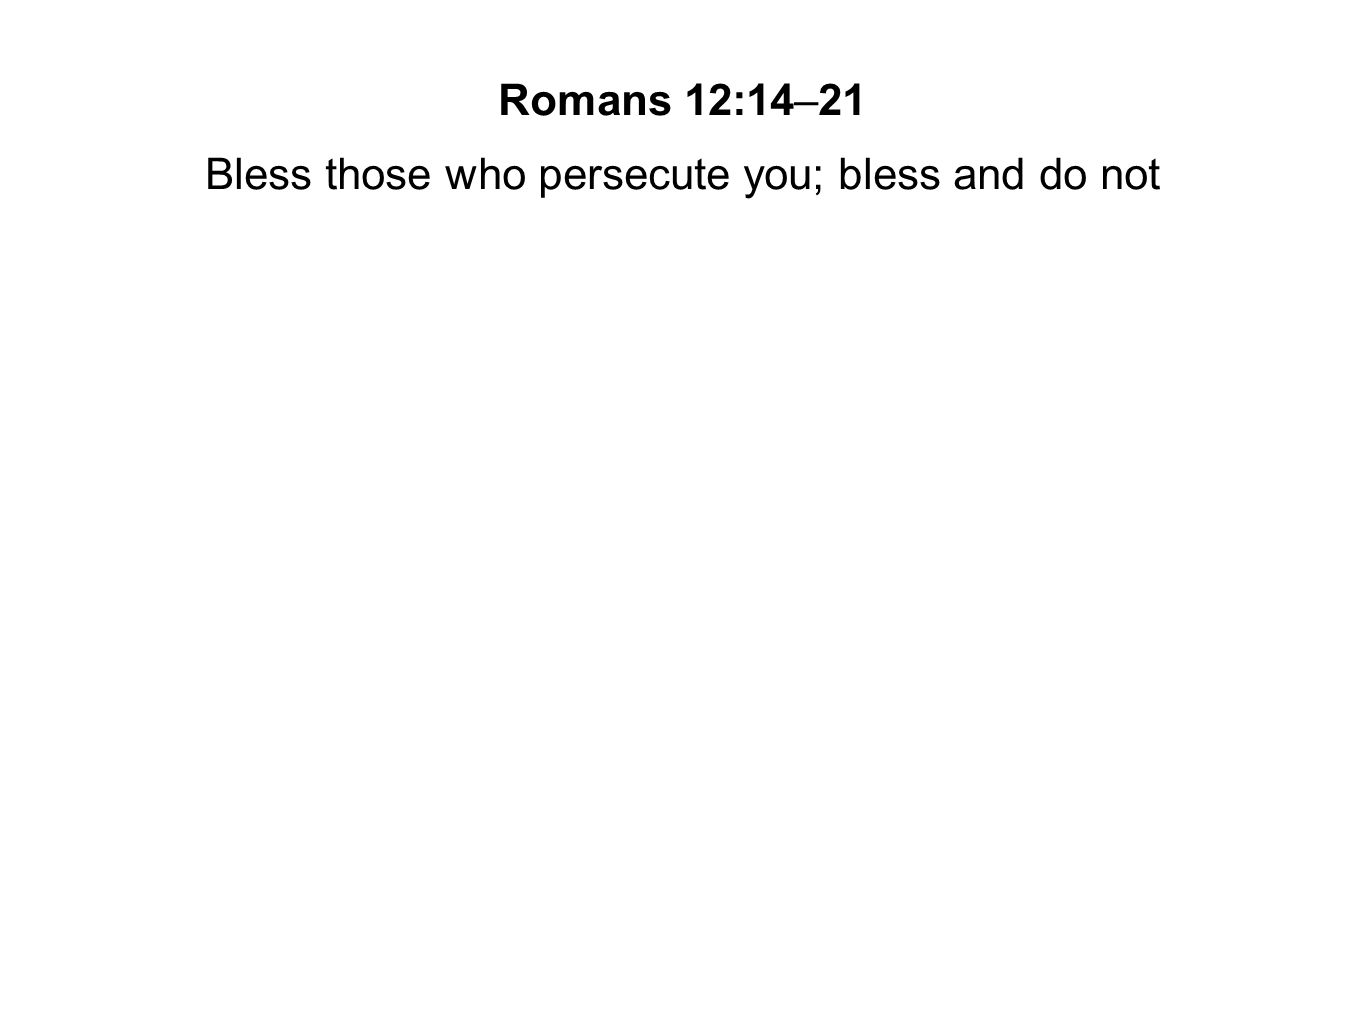 Bless those who persecute you; bless and do not